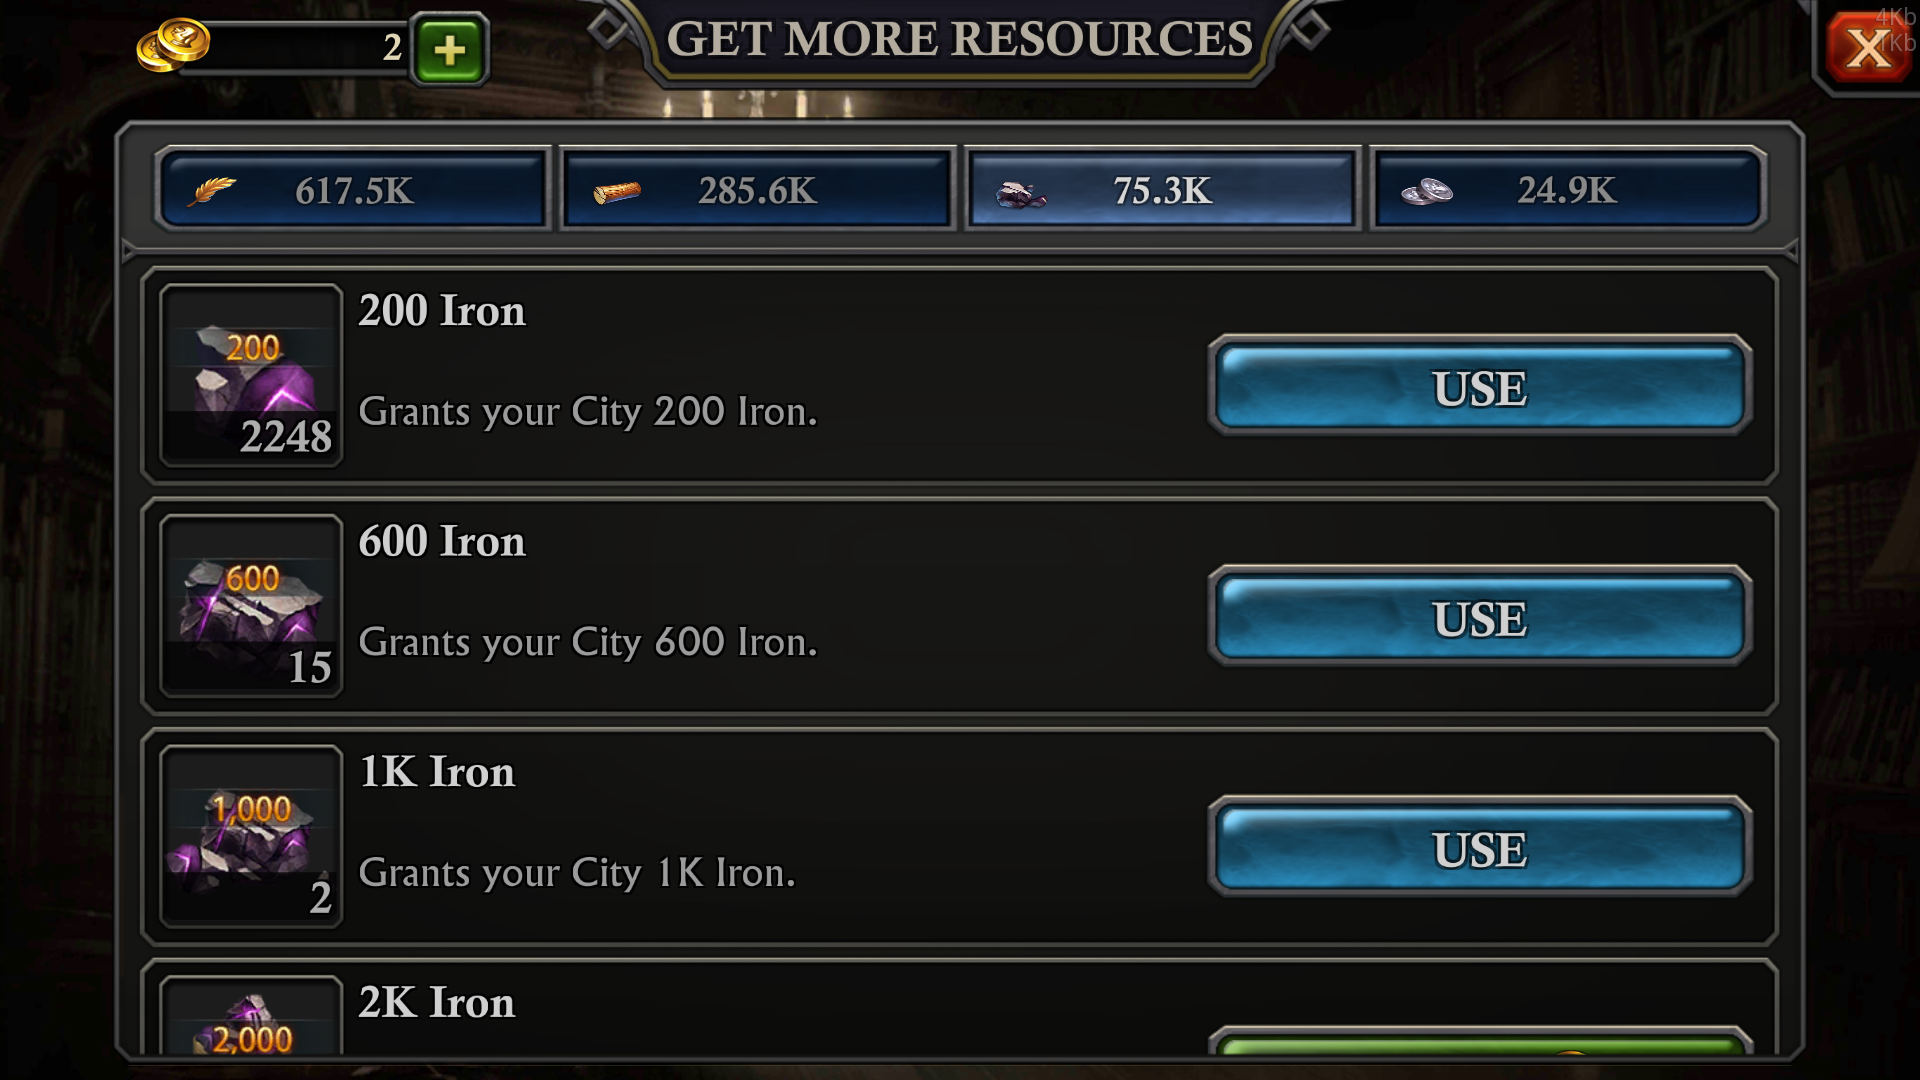 Iron Ore resource items